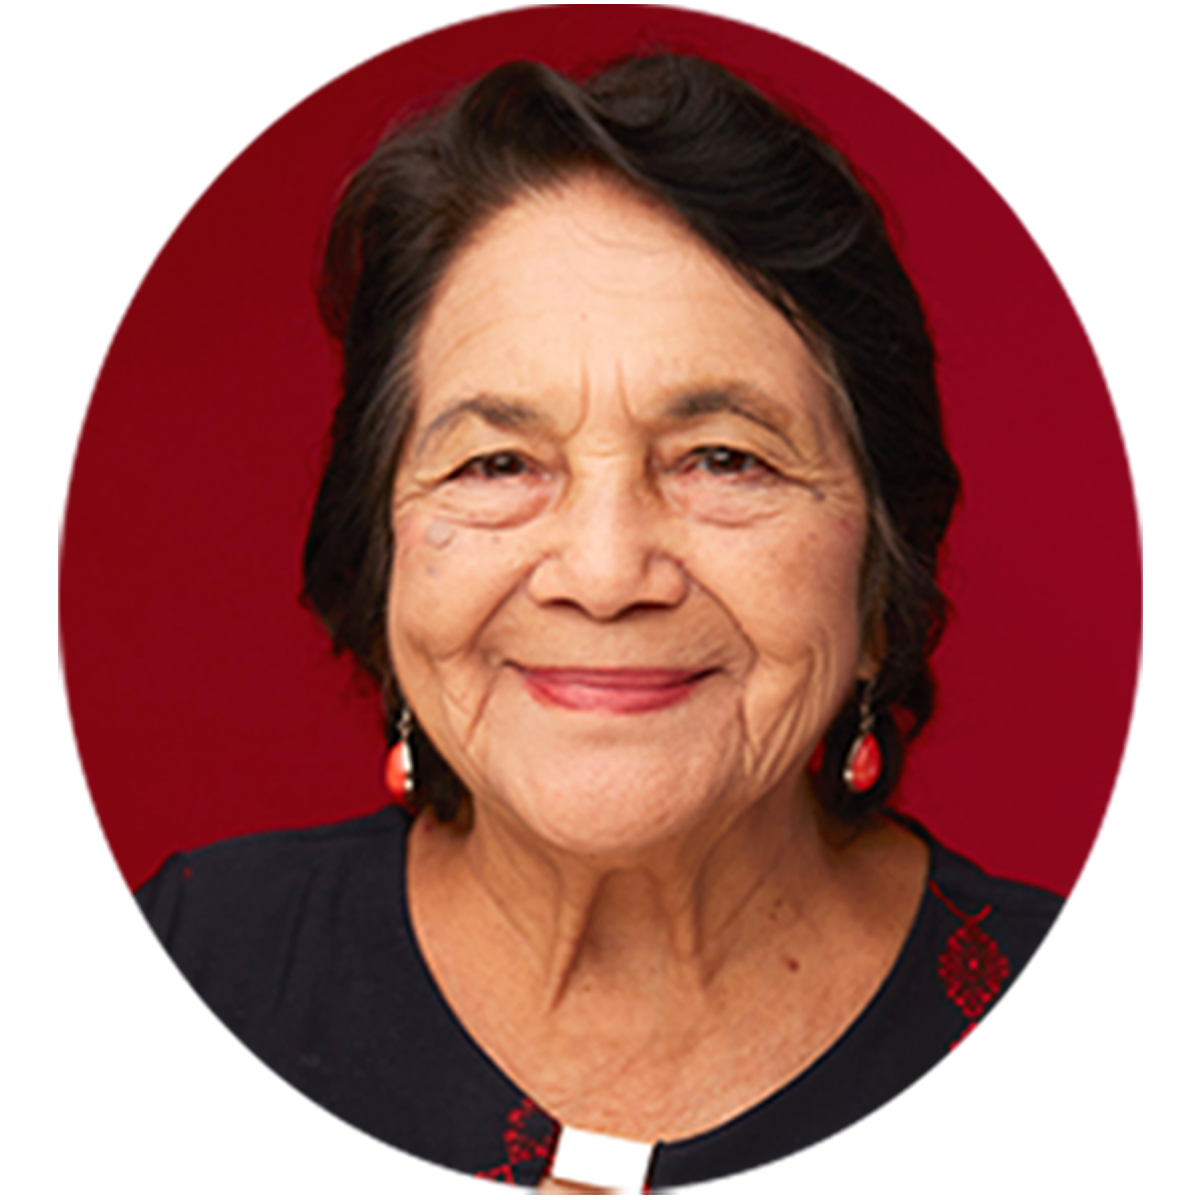 DOLORES HUERTA  LABOR LEADER. CIVIL RIGHTS ACTIVIST.  DOLORES HUERTA FOUNDATION